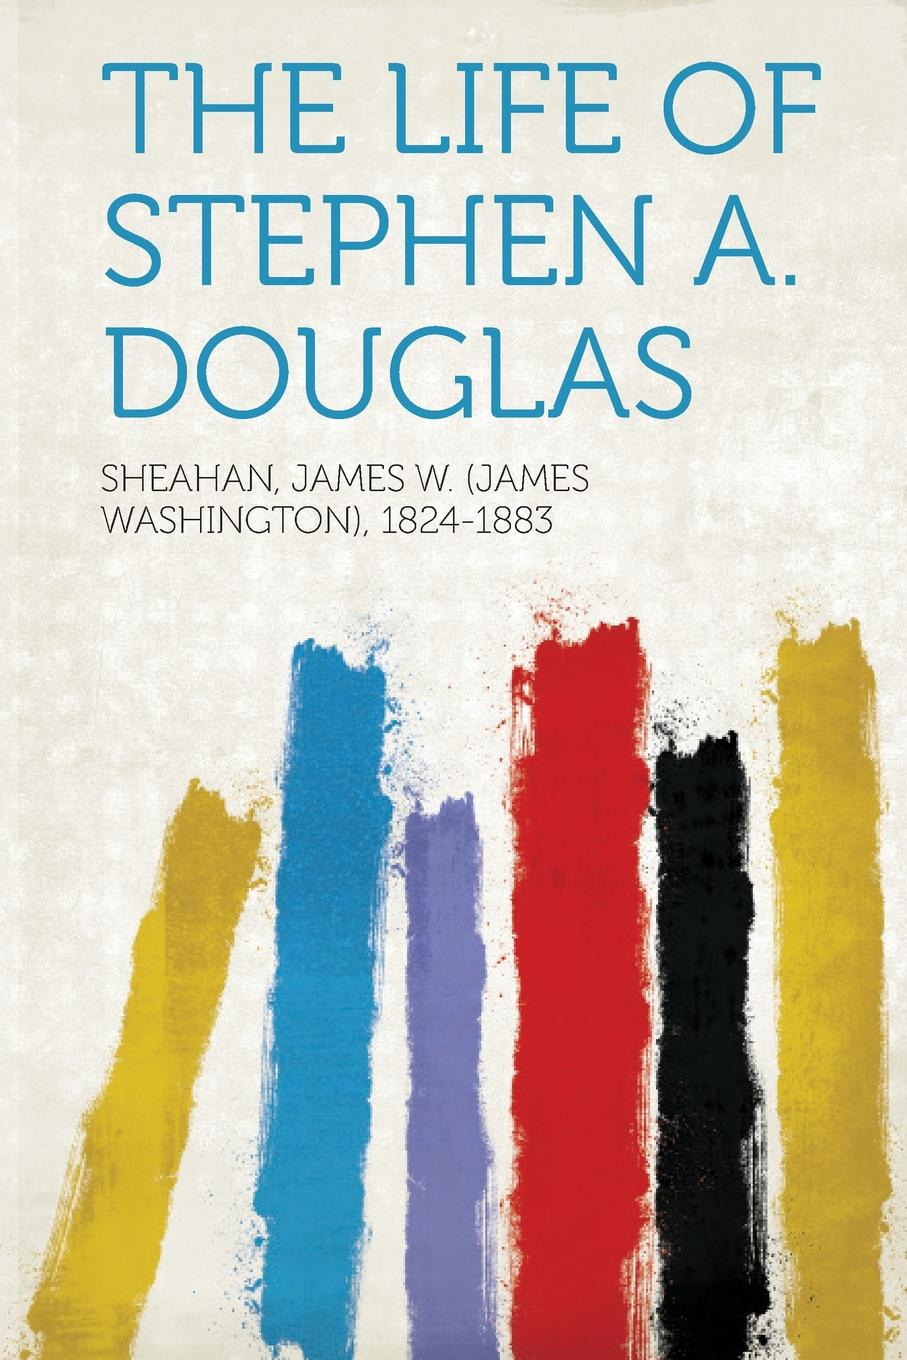 Sheahan James W. (James Wash 1824-1883 The Life of Stephen A. Douglas james w james washington sheahan the life of stephen a douglas